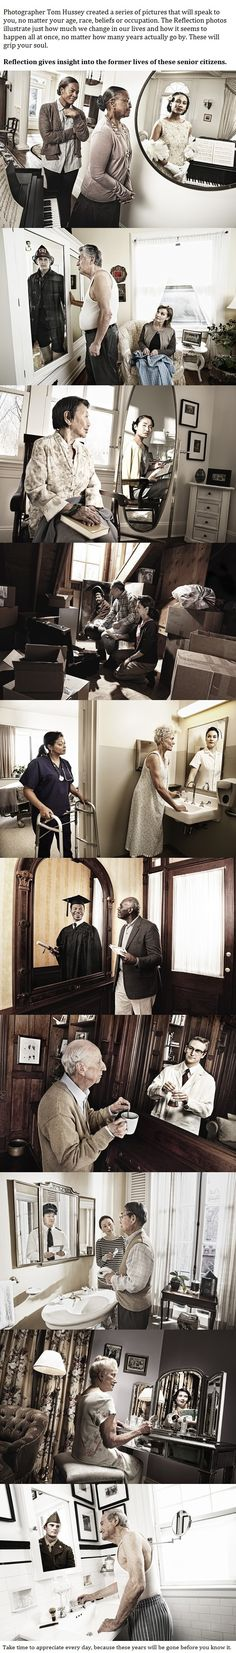 When You Look Closely At These 10 Photos, You'll See Why They Mean So Much. - Misc - quickmeme (photographer: Tom Hussy)